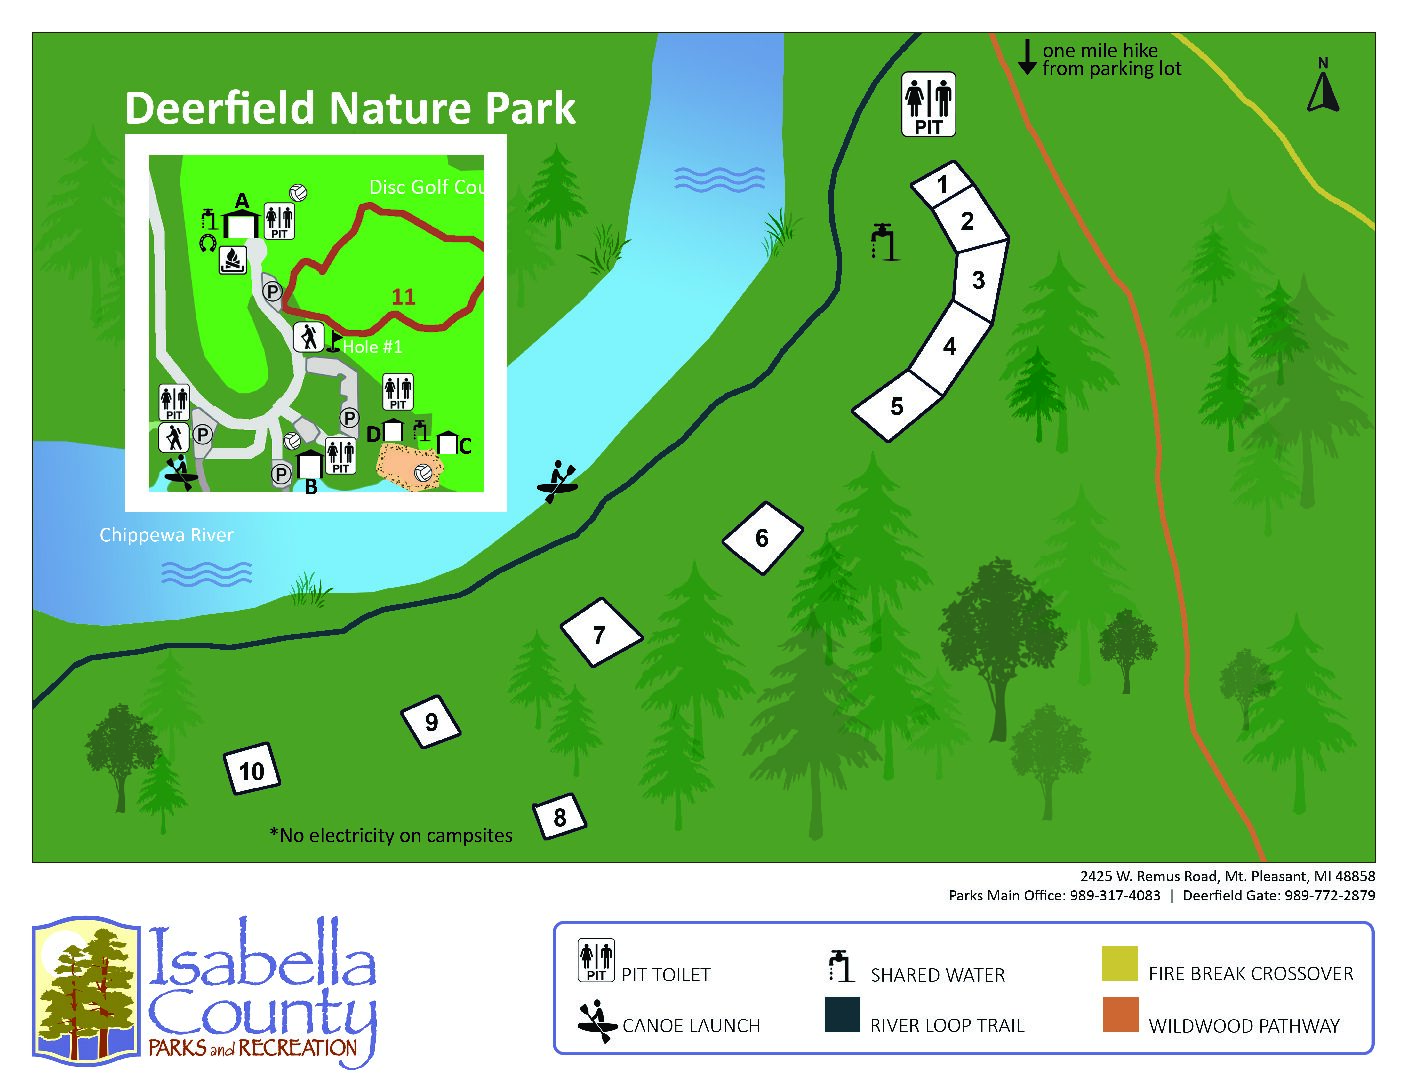 preview image of first page Deerfield Nature Park Campground Map